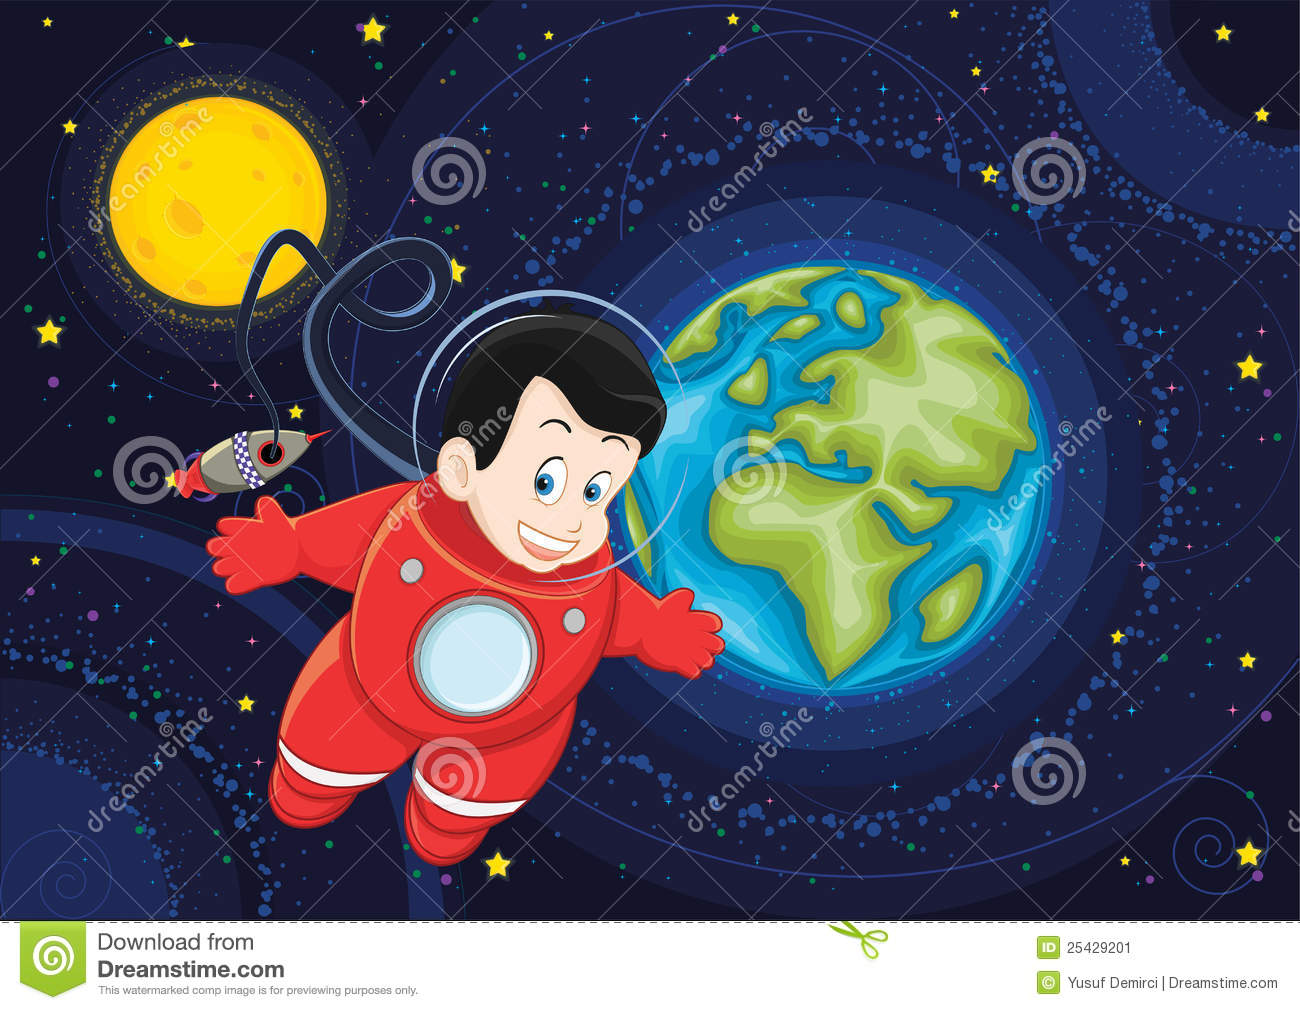 Niño De Dibujos Animados De Astronauta Volando En El: Cute Astronaut Flying In Space Vector Illustration Stock